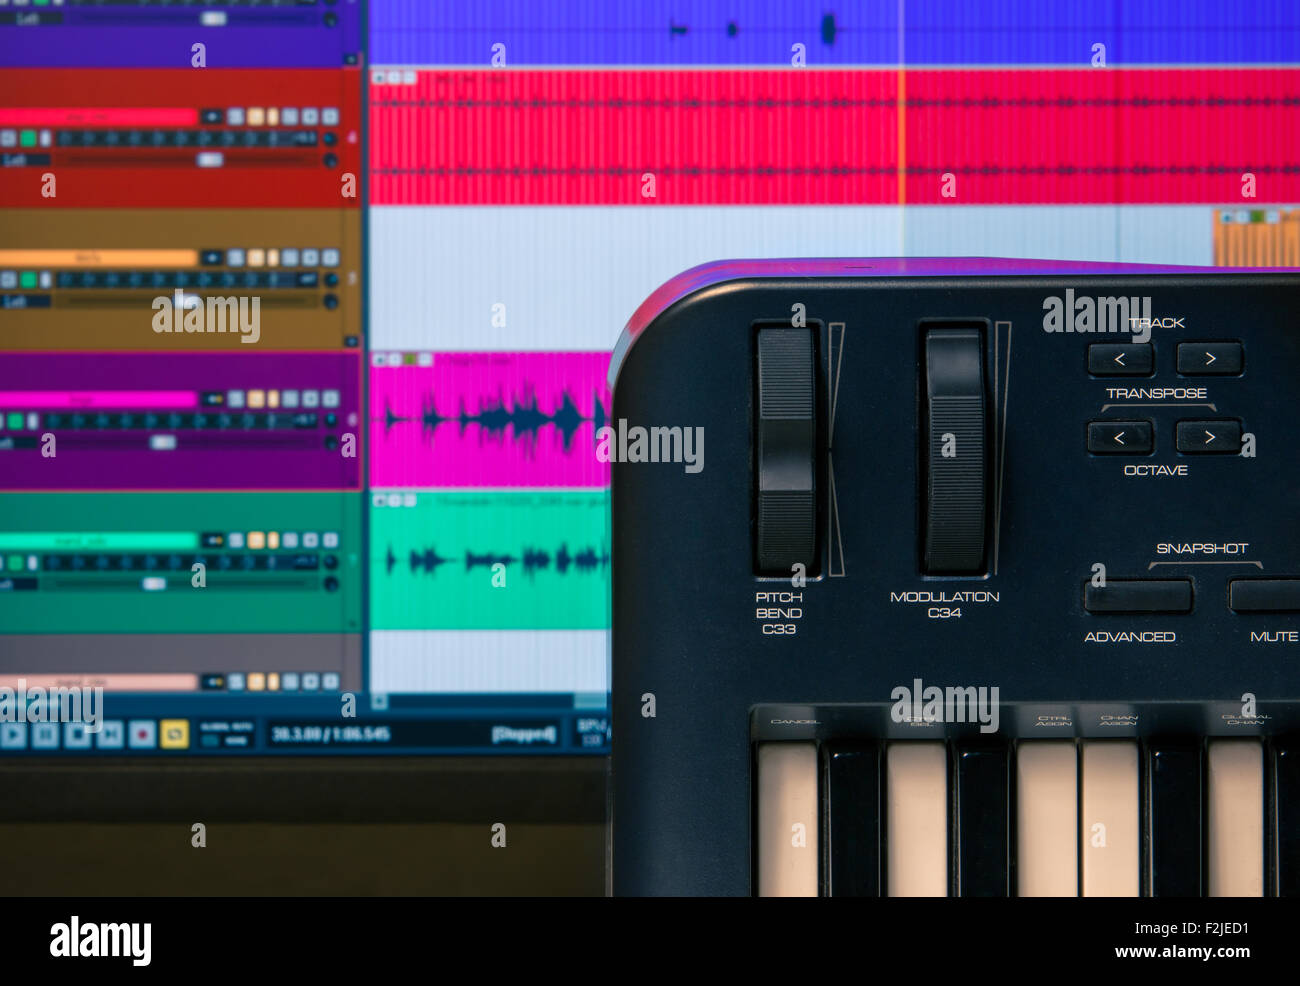 Midi keyboard and controller with faders and buttons. Waveforms in a DAW are visible in the background - Stock Image